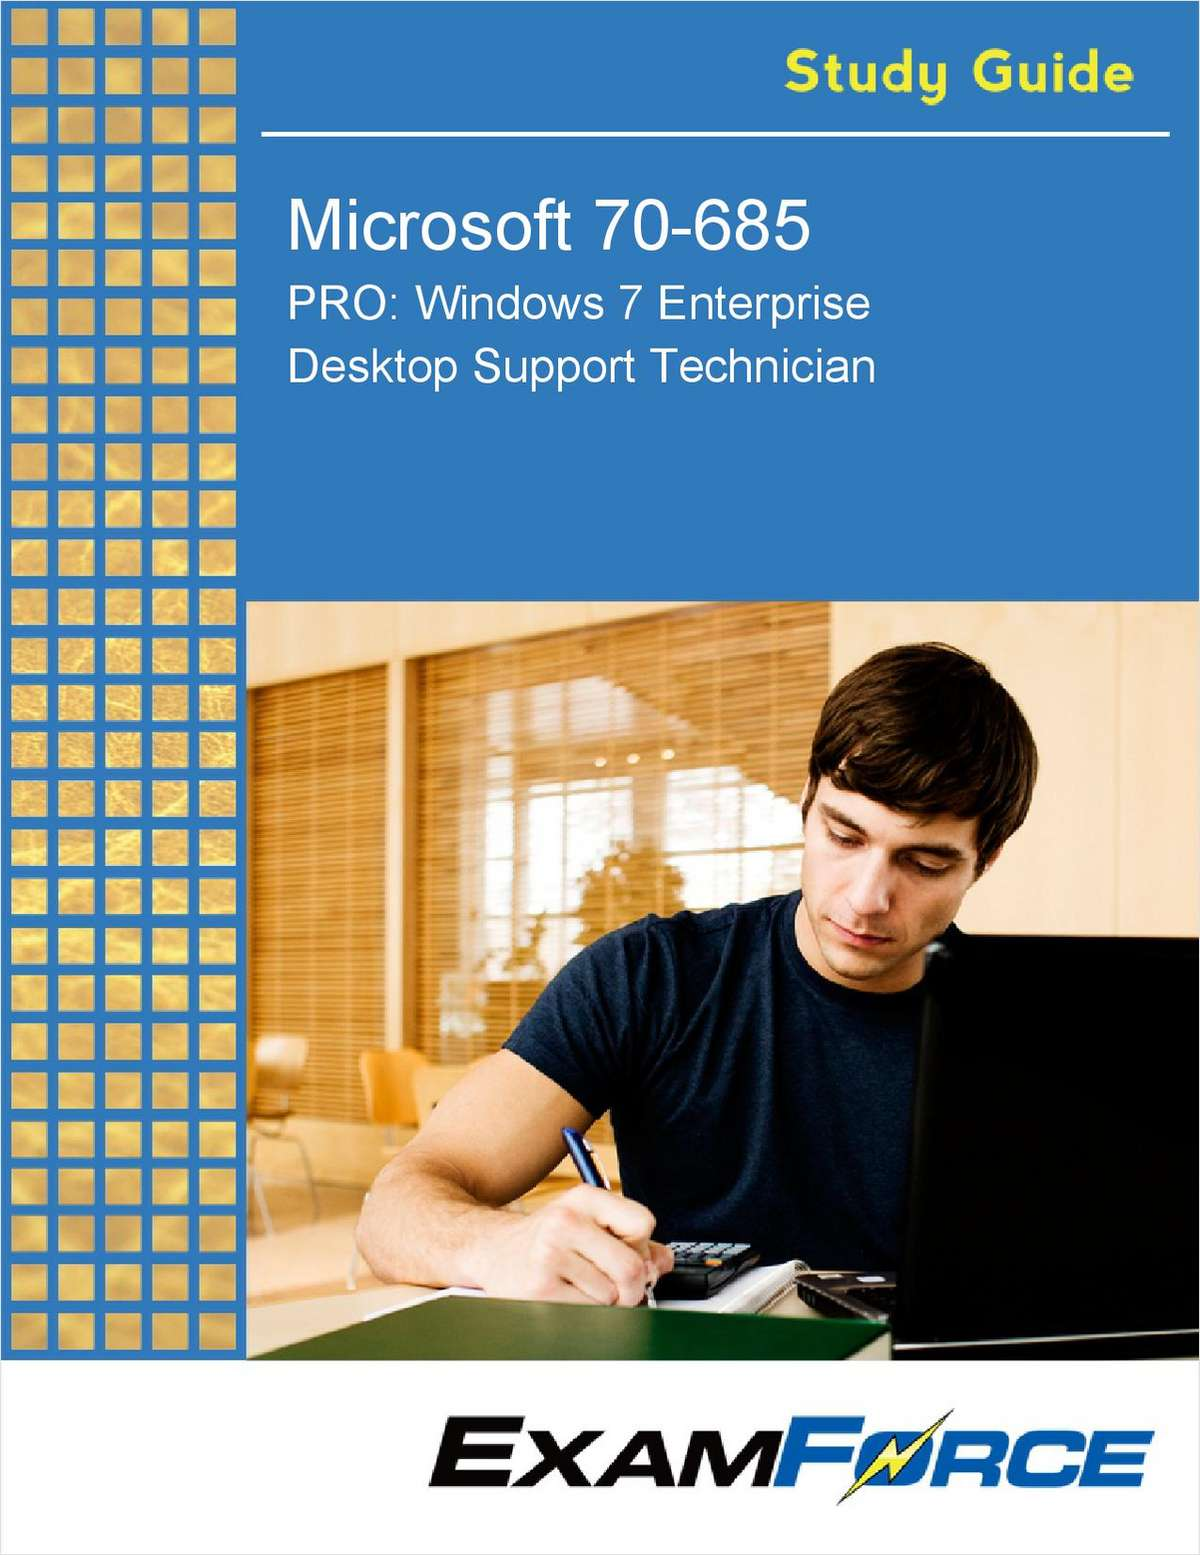 Microsoft 70-685 PRO: Windows 7 Enterprise Desktop Support Technician (FREE Study Guide)